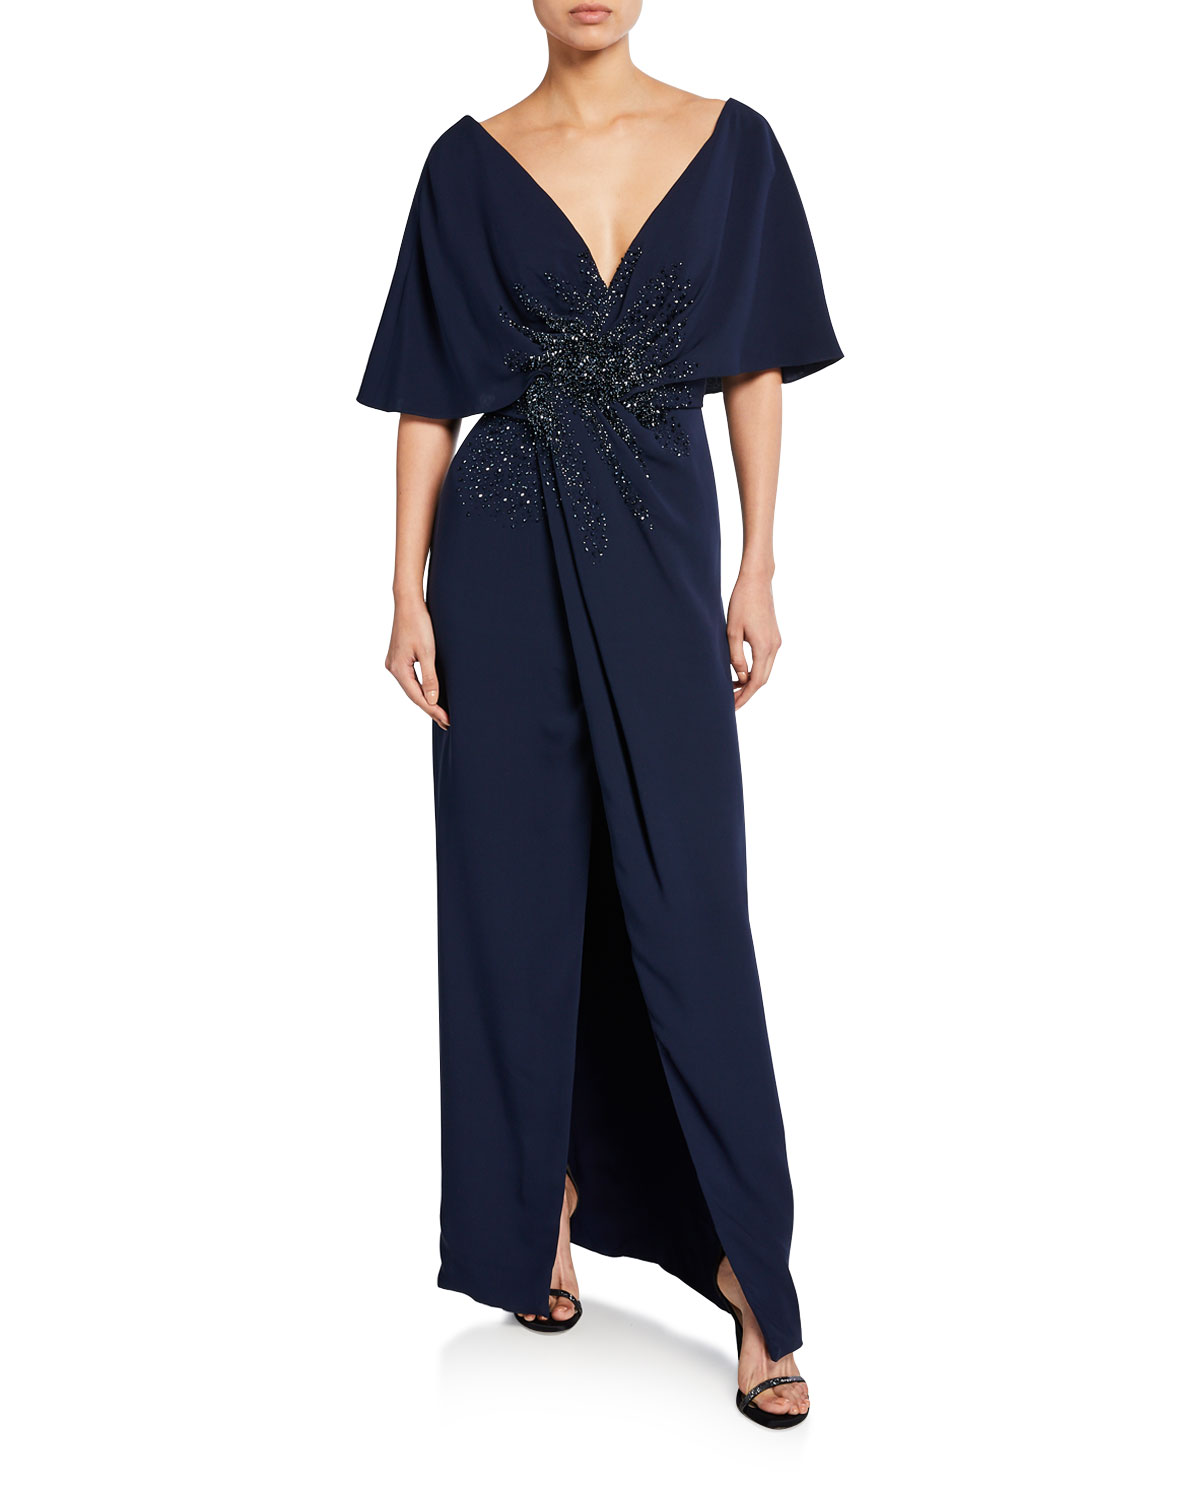 J Mendel Embroidered-Front Half-Cape Gown In Navy